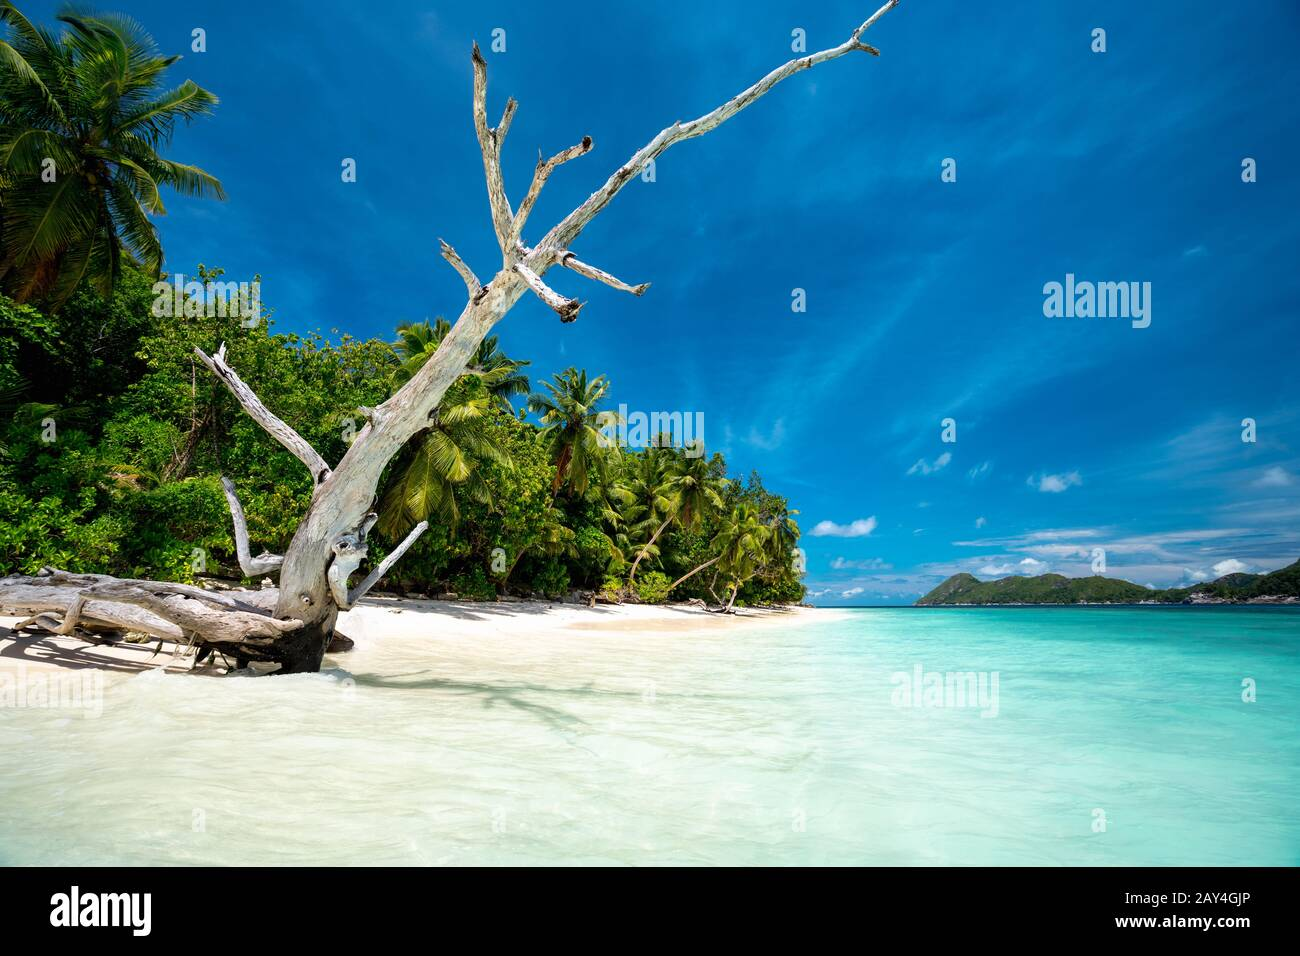 Surreal view with dry tree trunk on sandy beach with palm trees and blue lagoon and sky Stock Photo